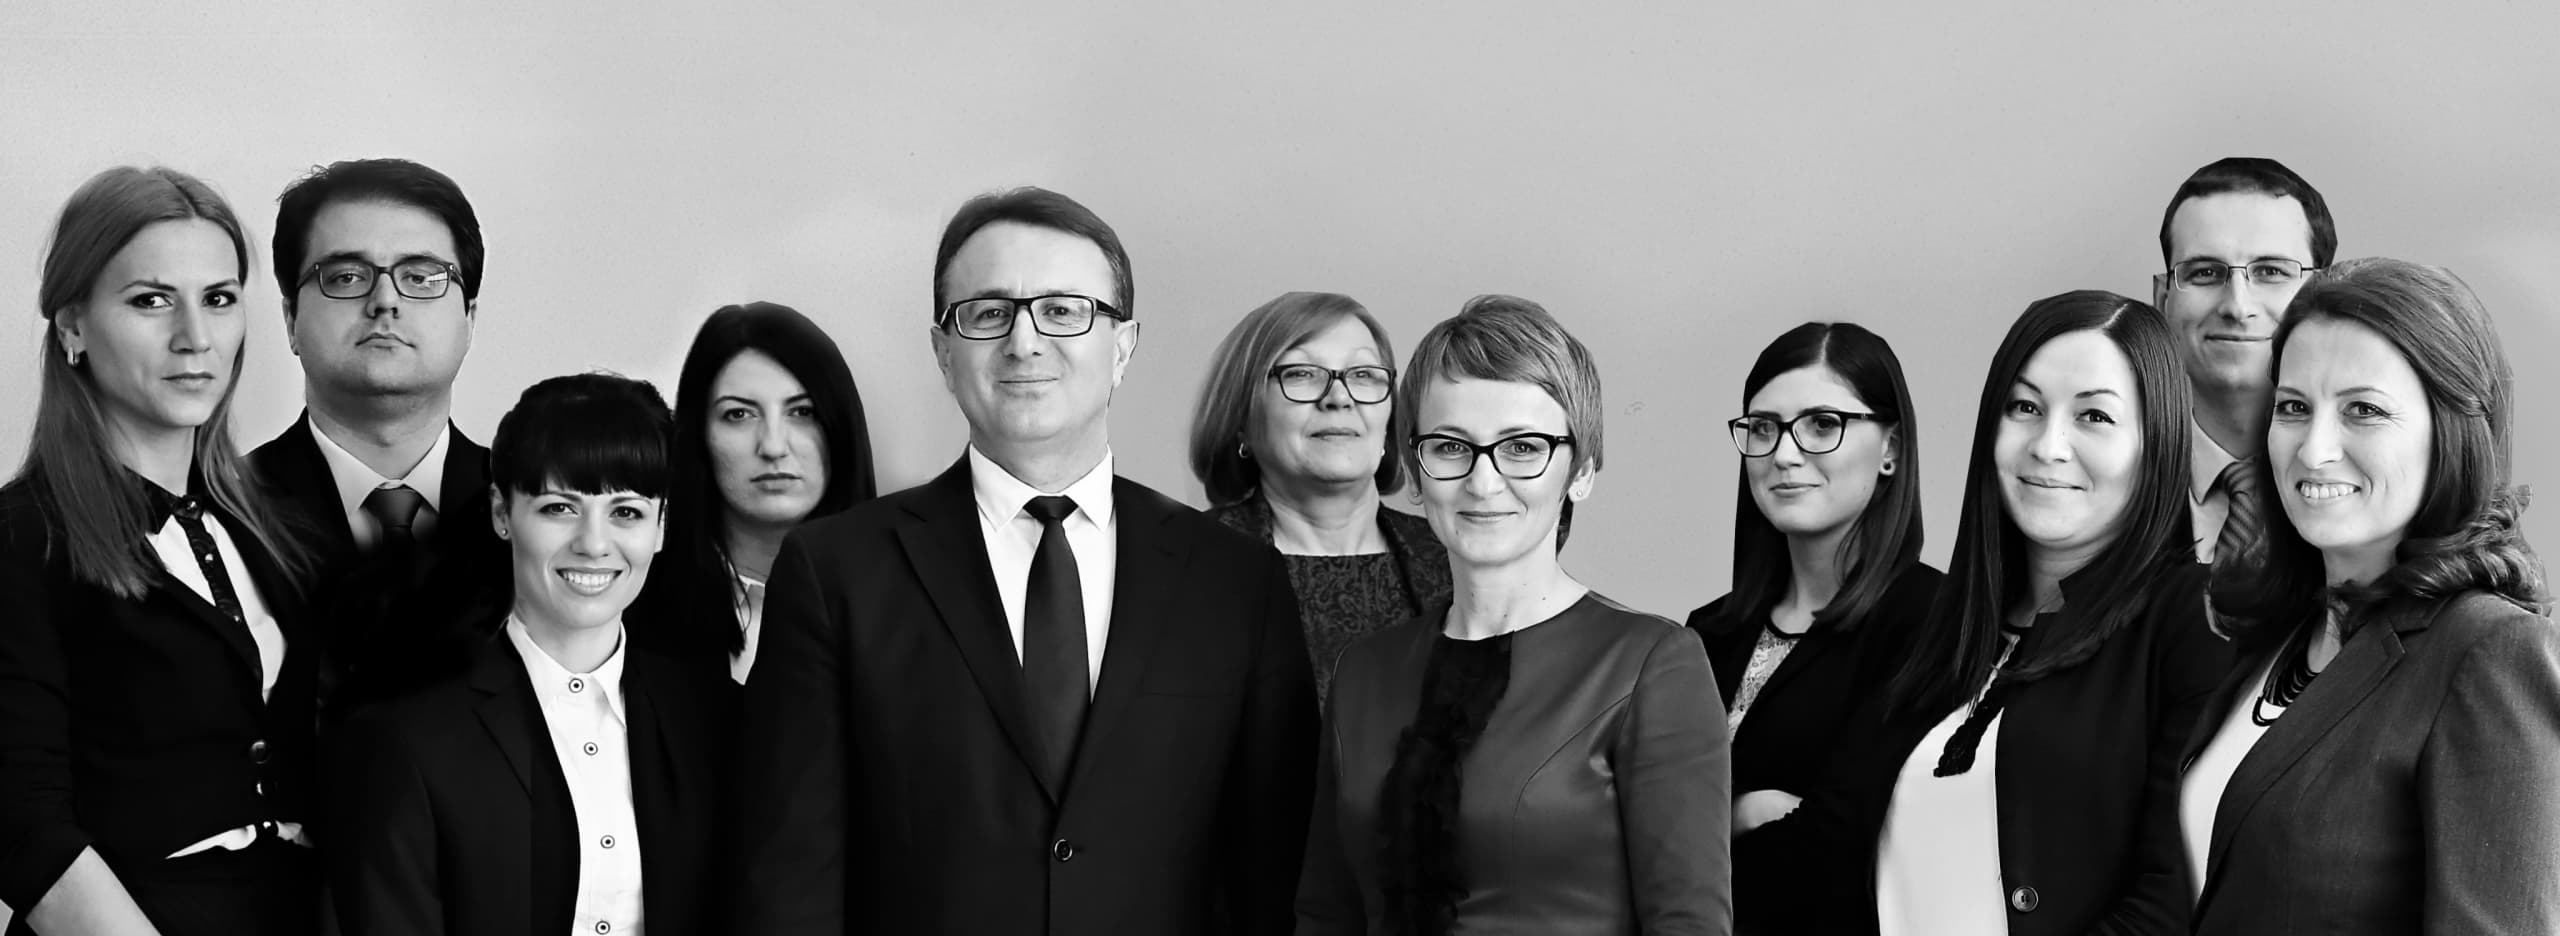 law firm - About us - Team